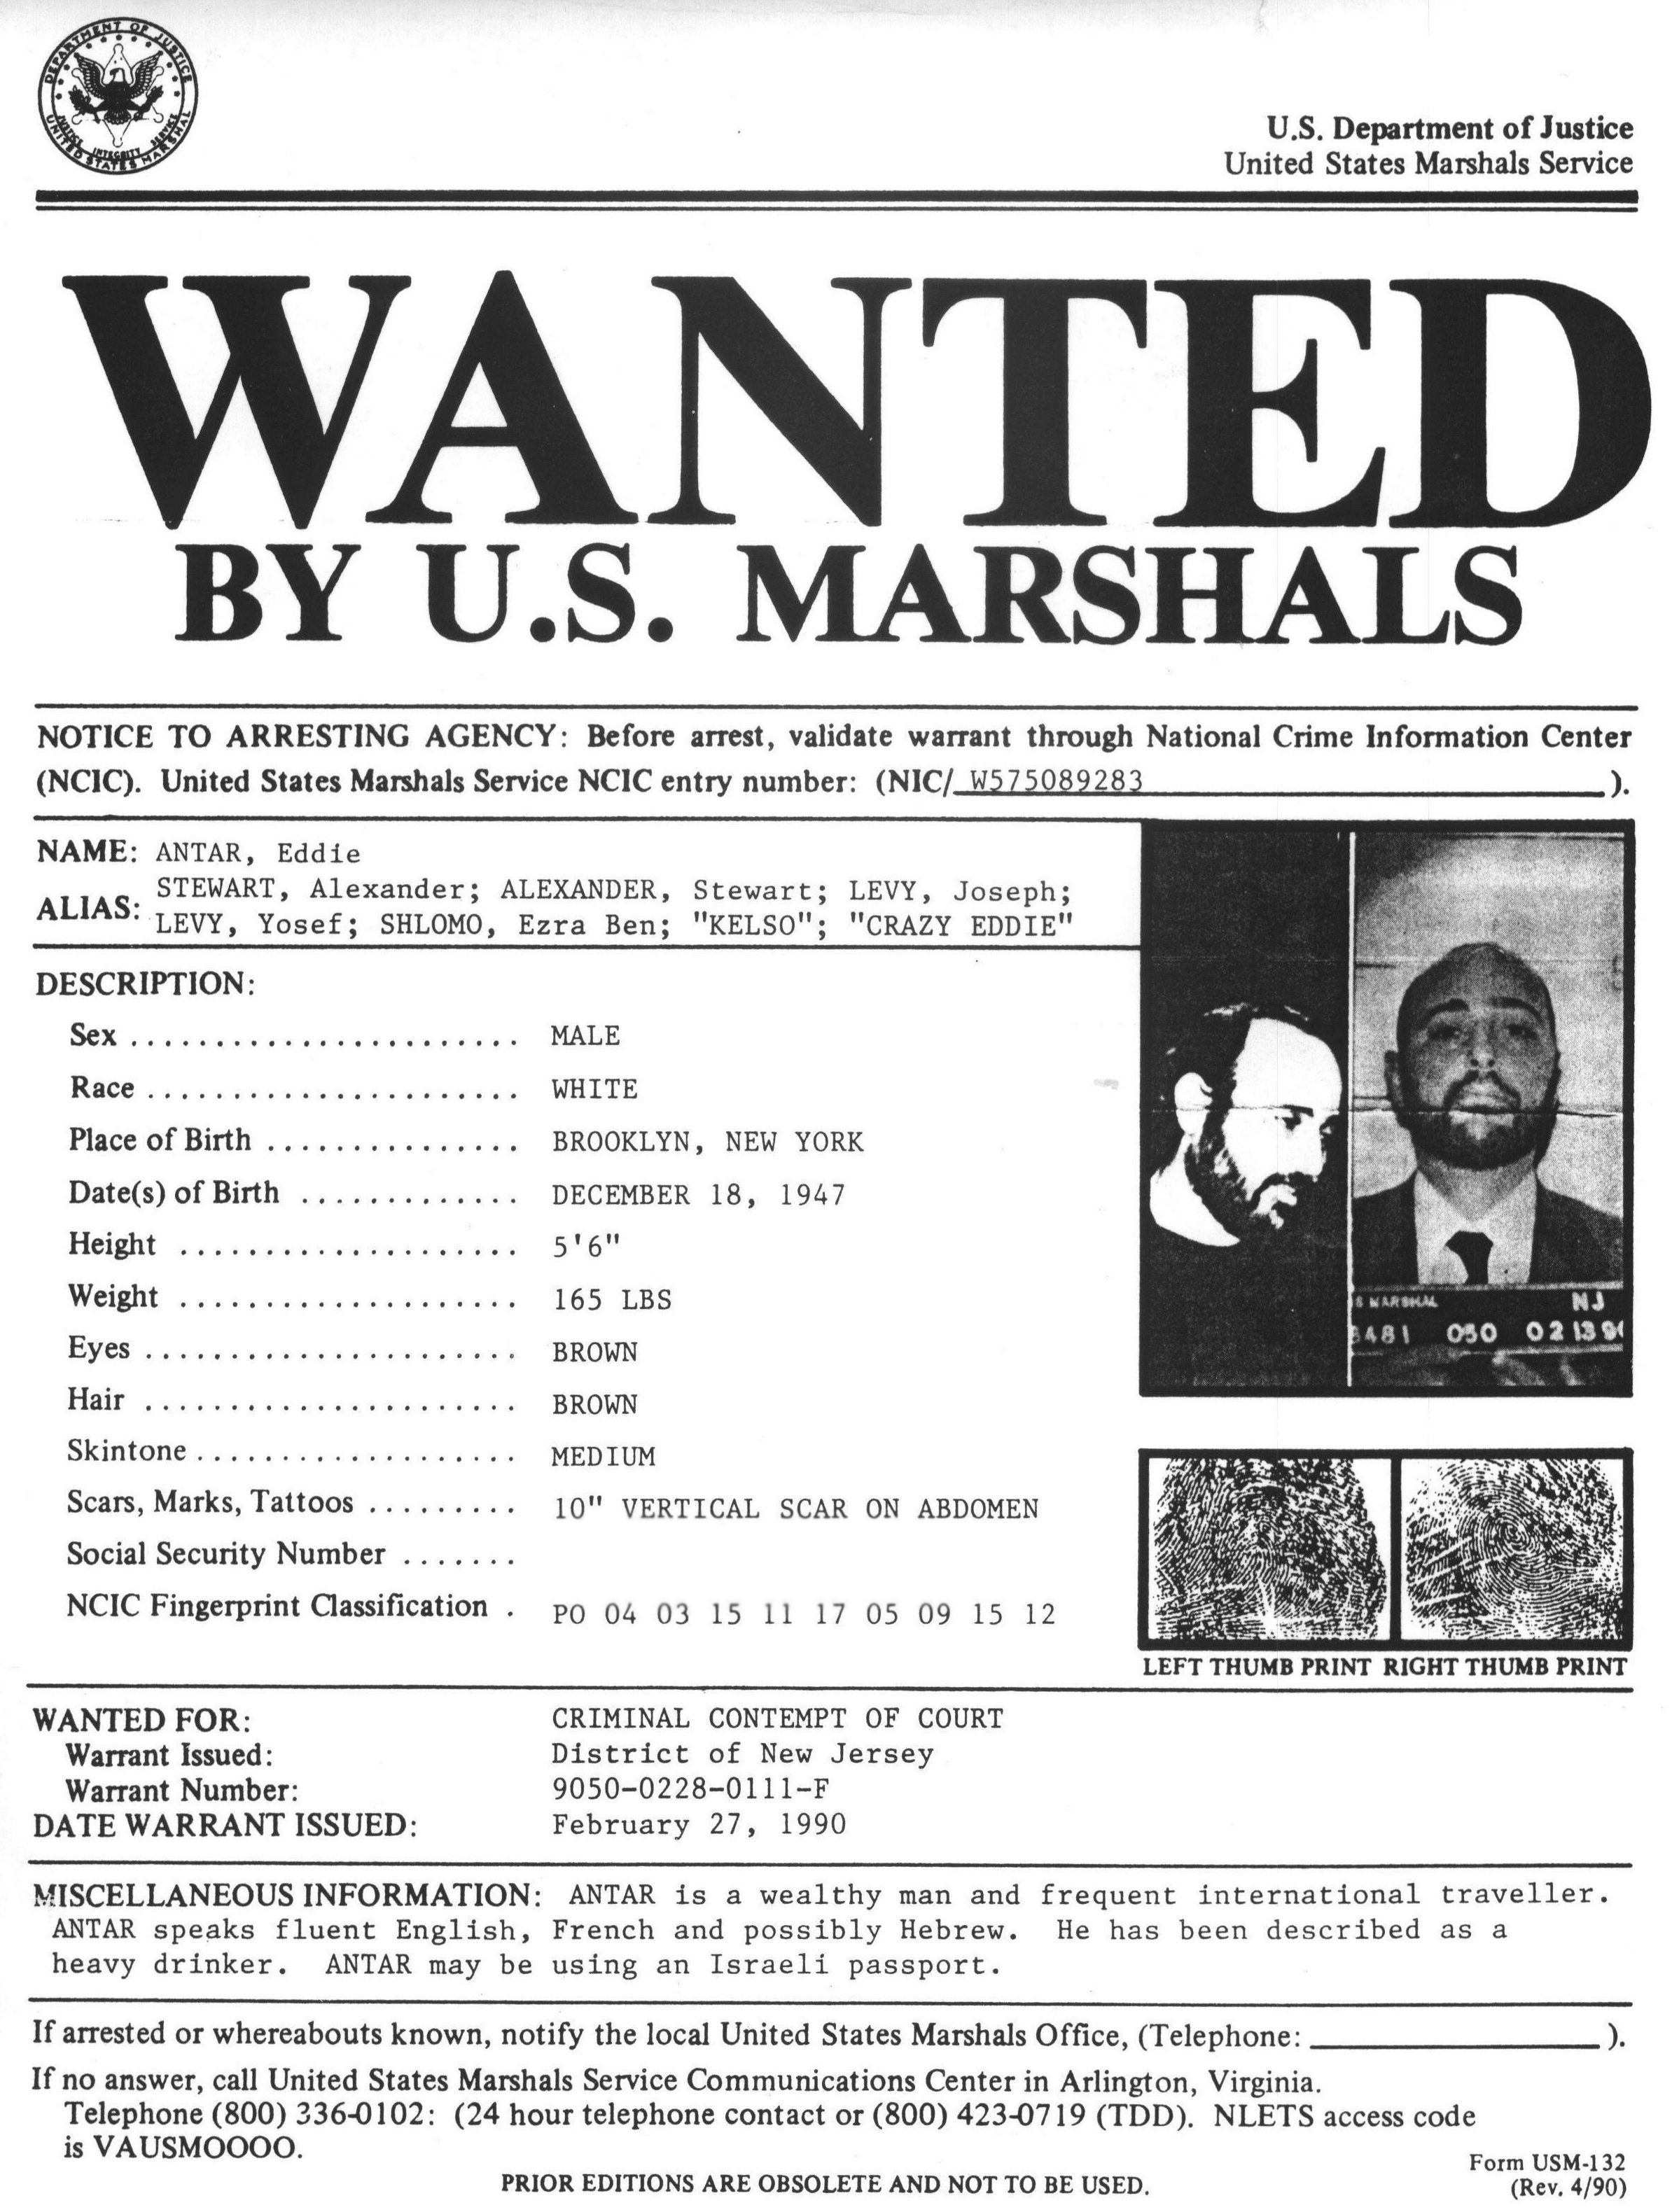 File:Eddie Antar arrest warrant.png - Wikimedia Commons